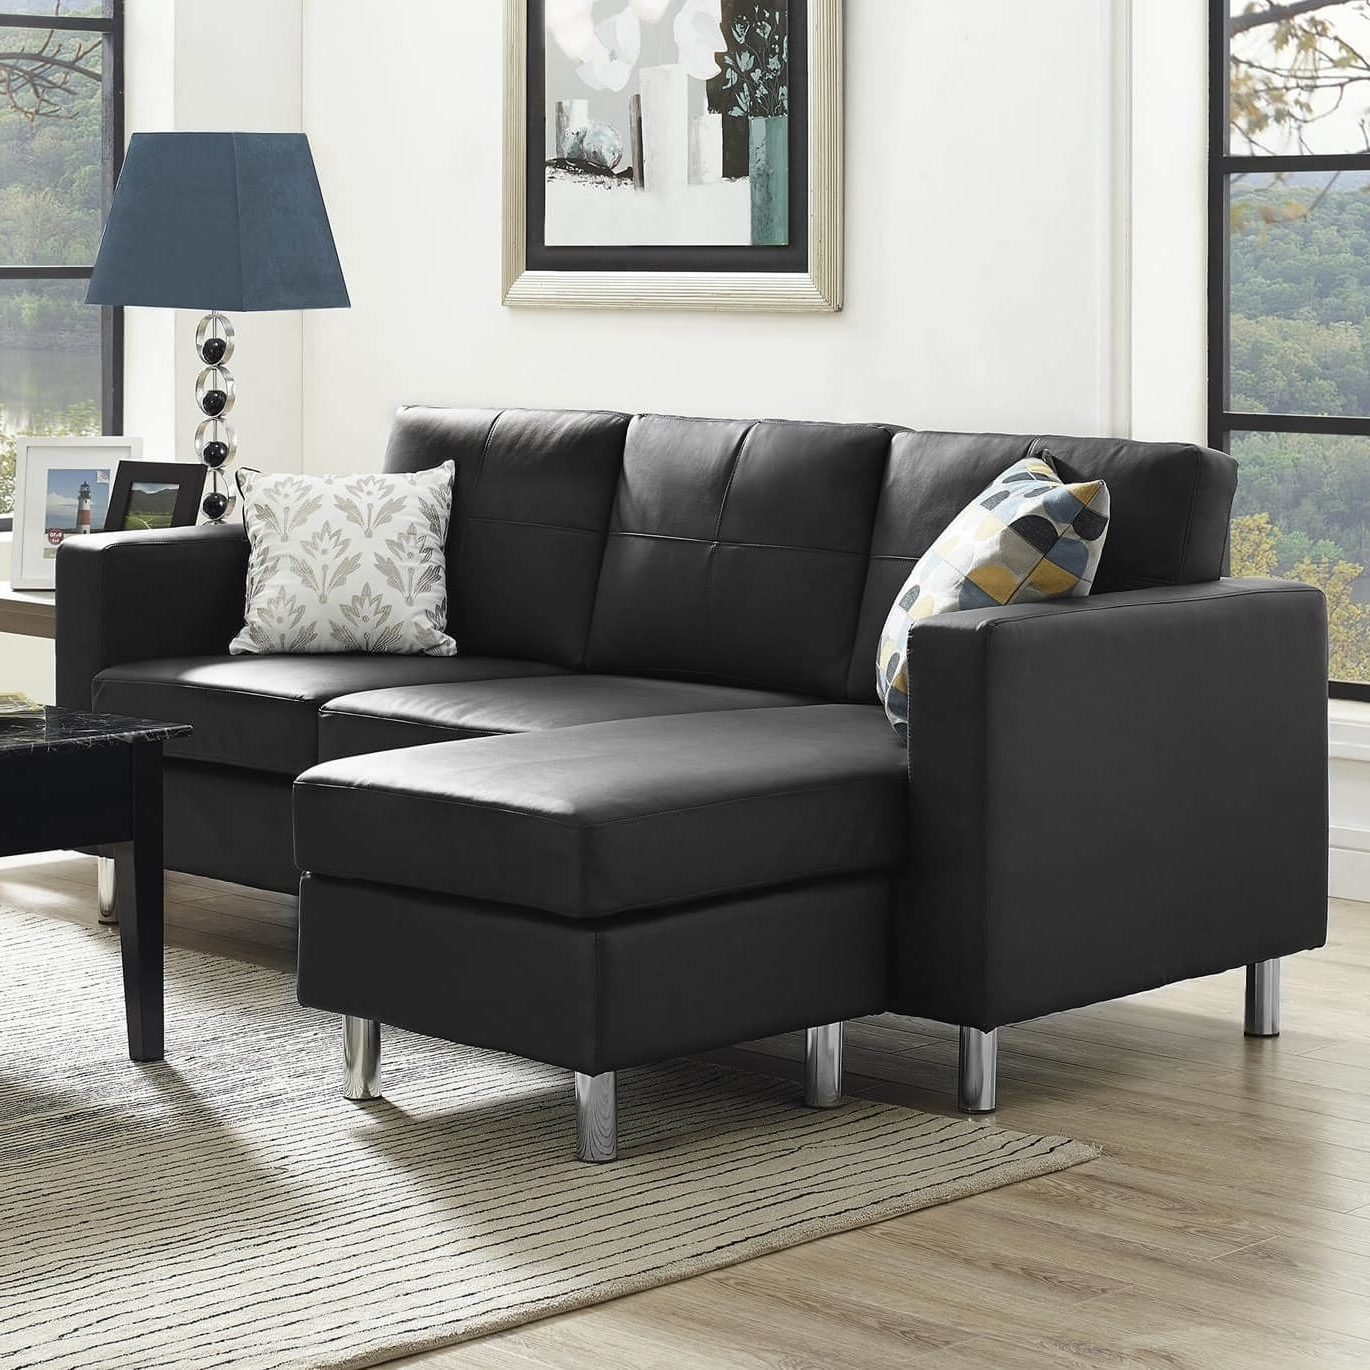 Most Recent Sectional Sofas Under 500 Within 40 Cheap Sectional Sofas Under $500 For  (View 8 of 15)